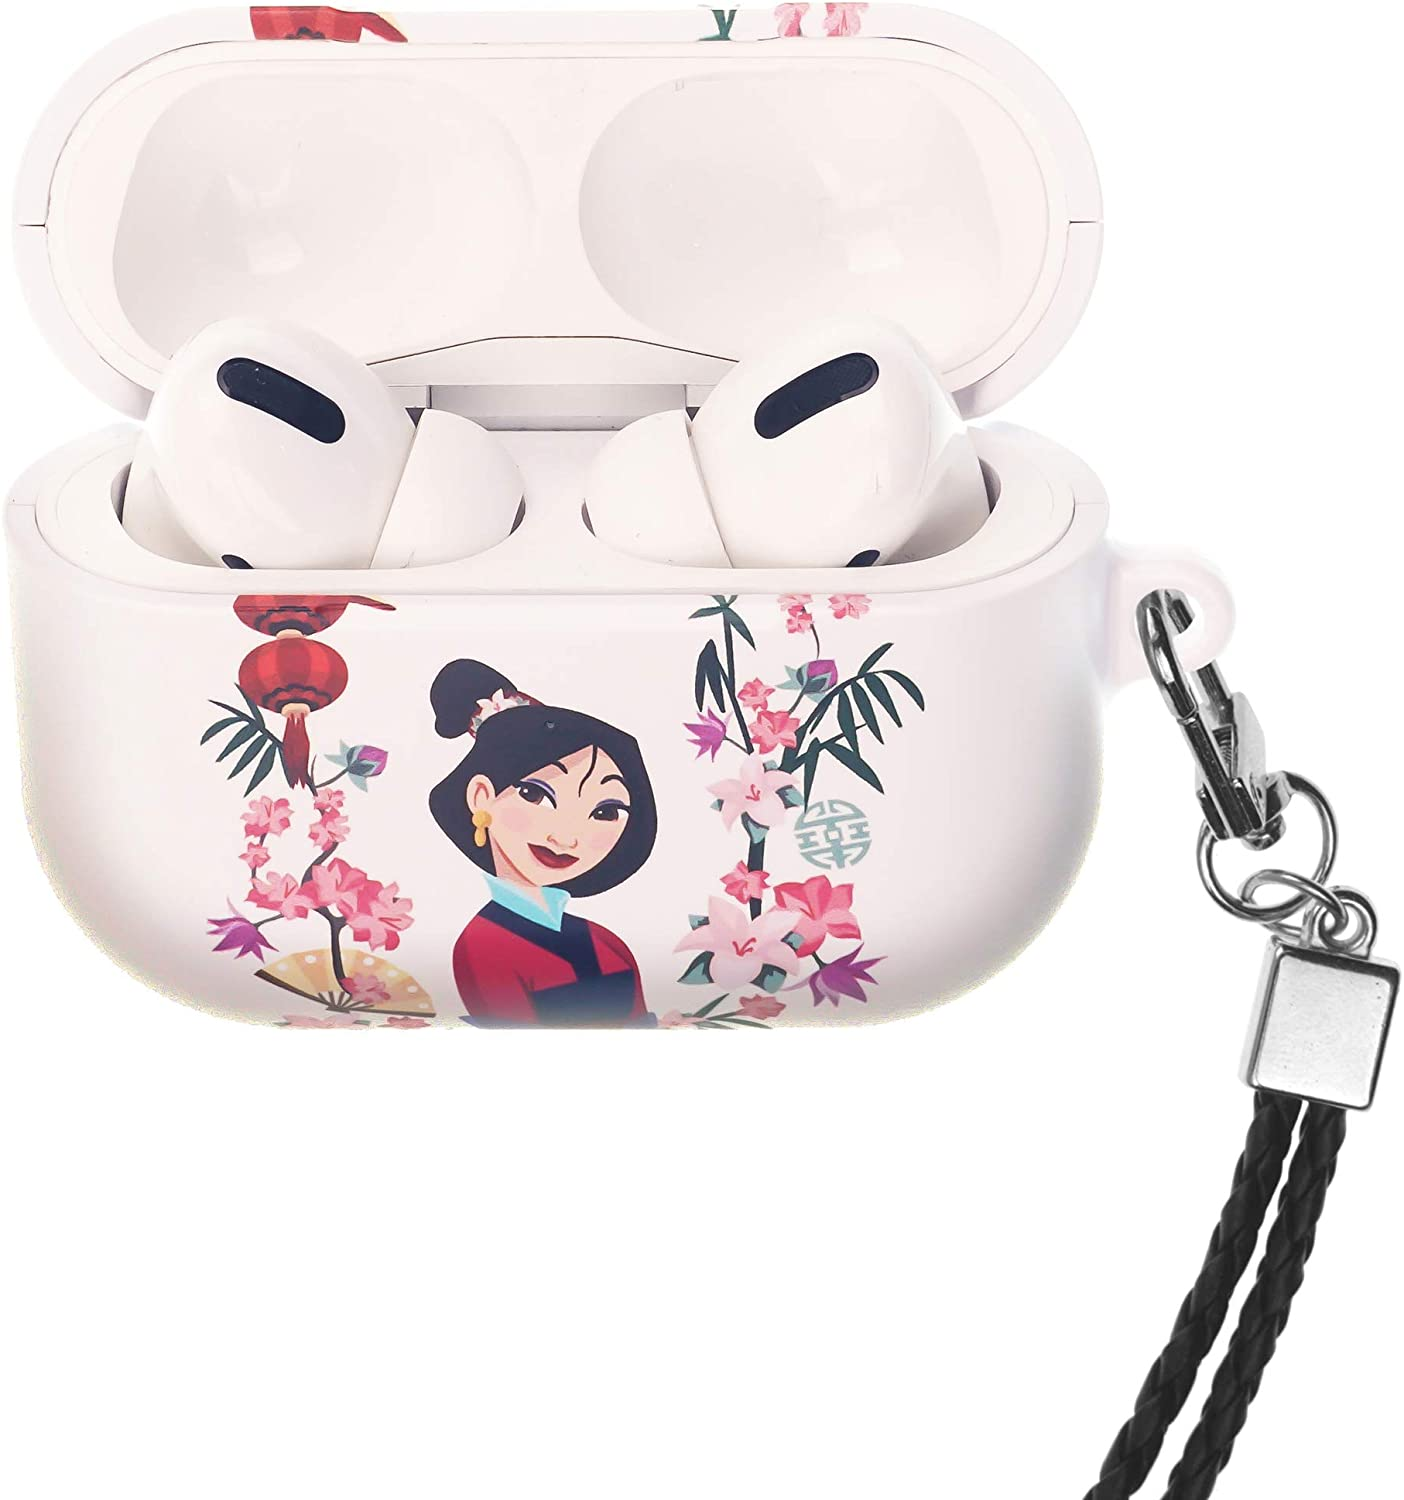 Accessories Compatible with Apple Airpods Pro Goofy AirPods Pro Case with Neck Lanyard Hard PC Shell Strap Hole Cover Front LED Visible Face Goofy